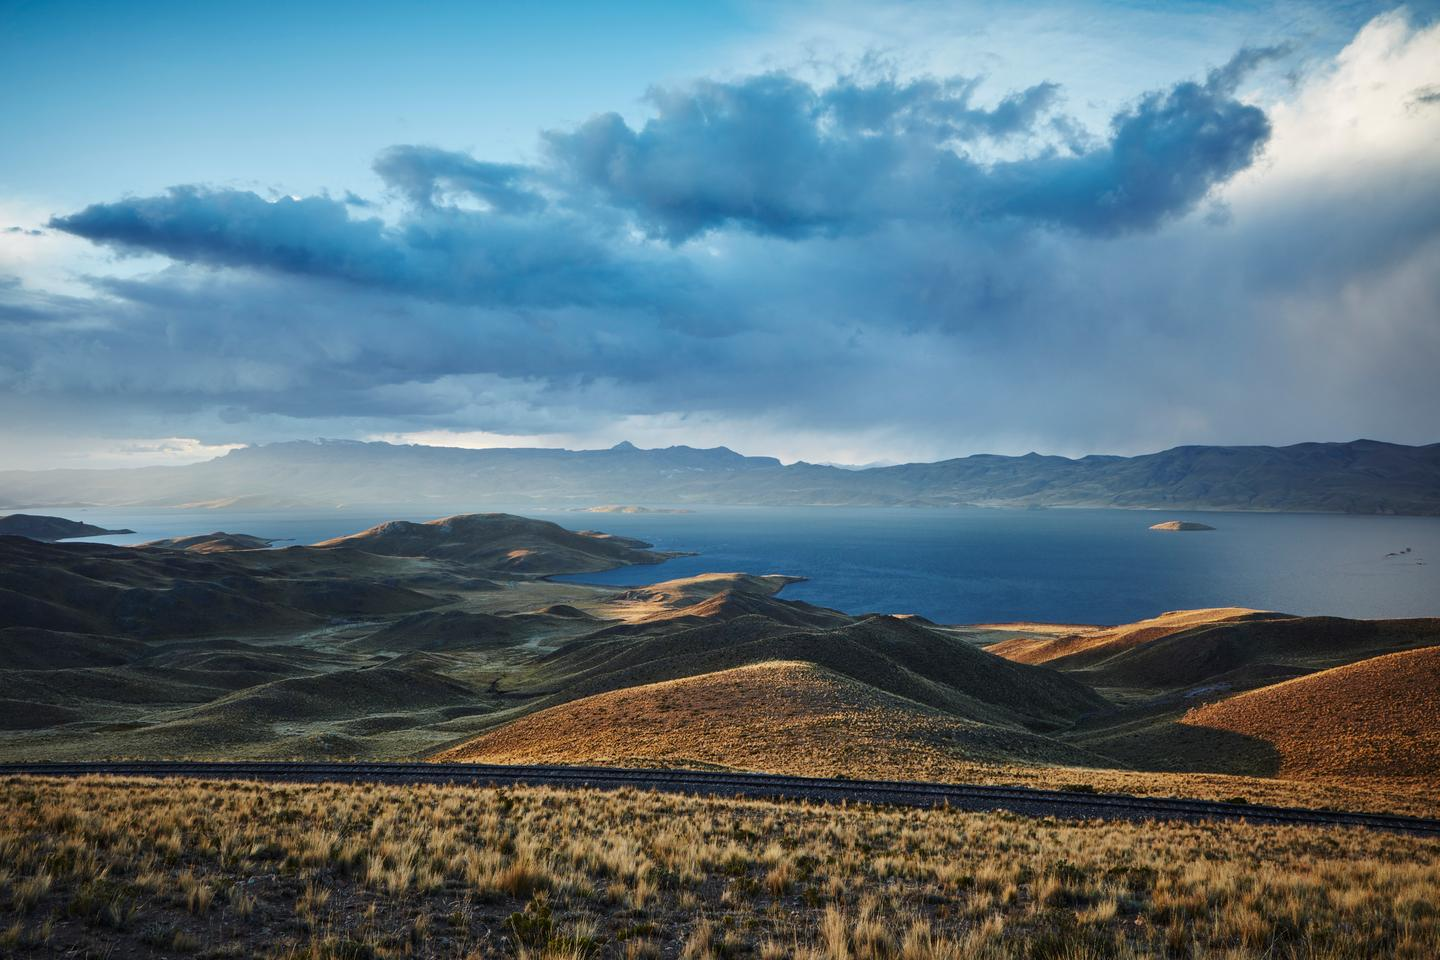 The Peruvian Andes are home to some spectacular sights